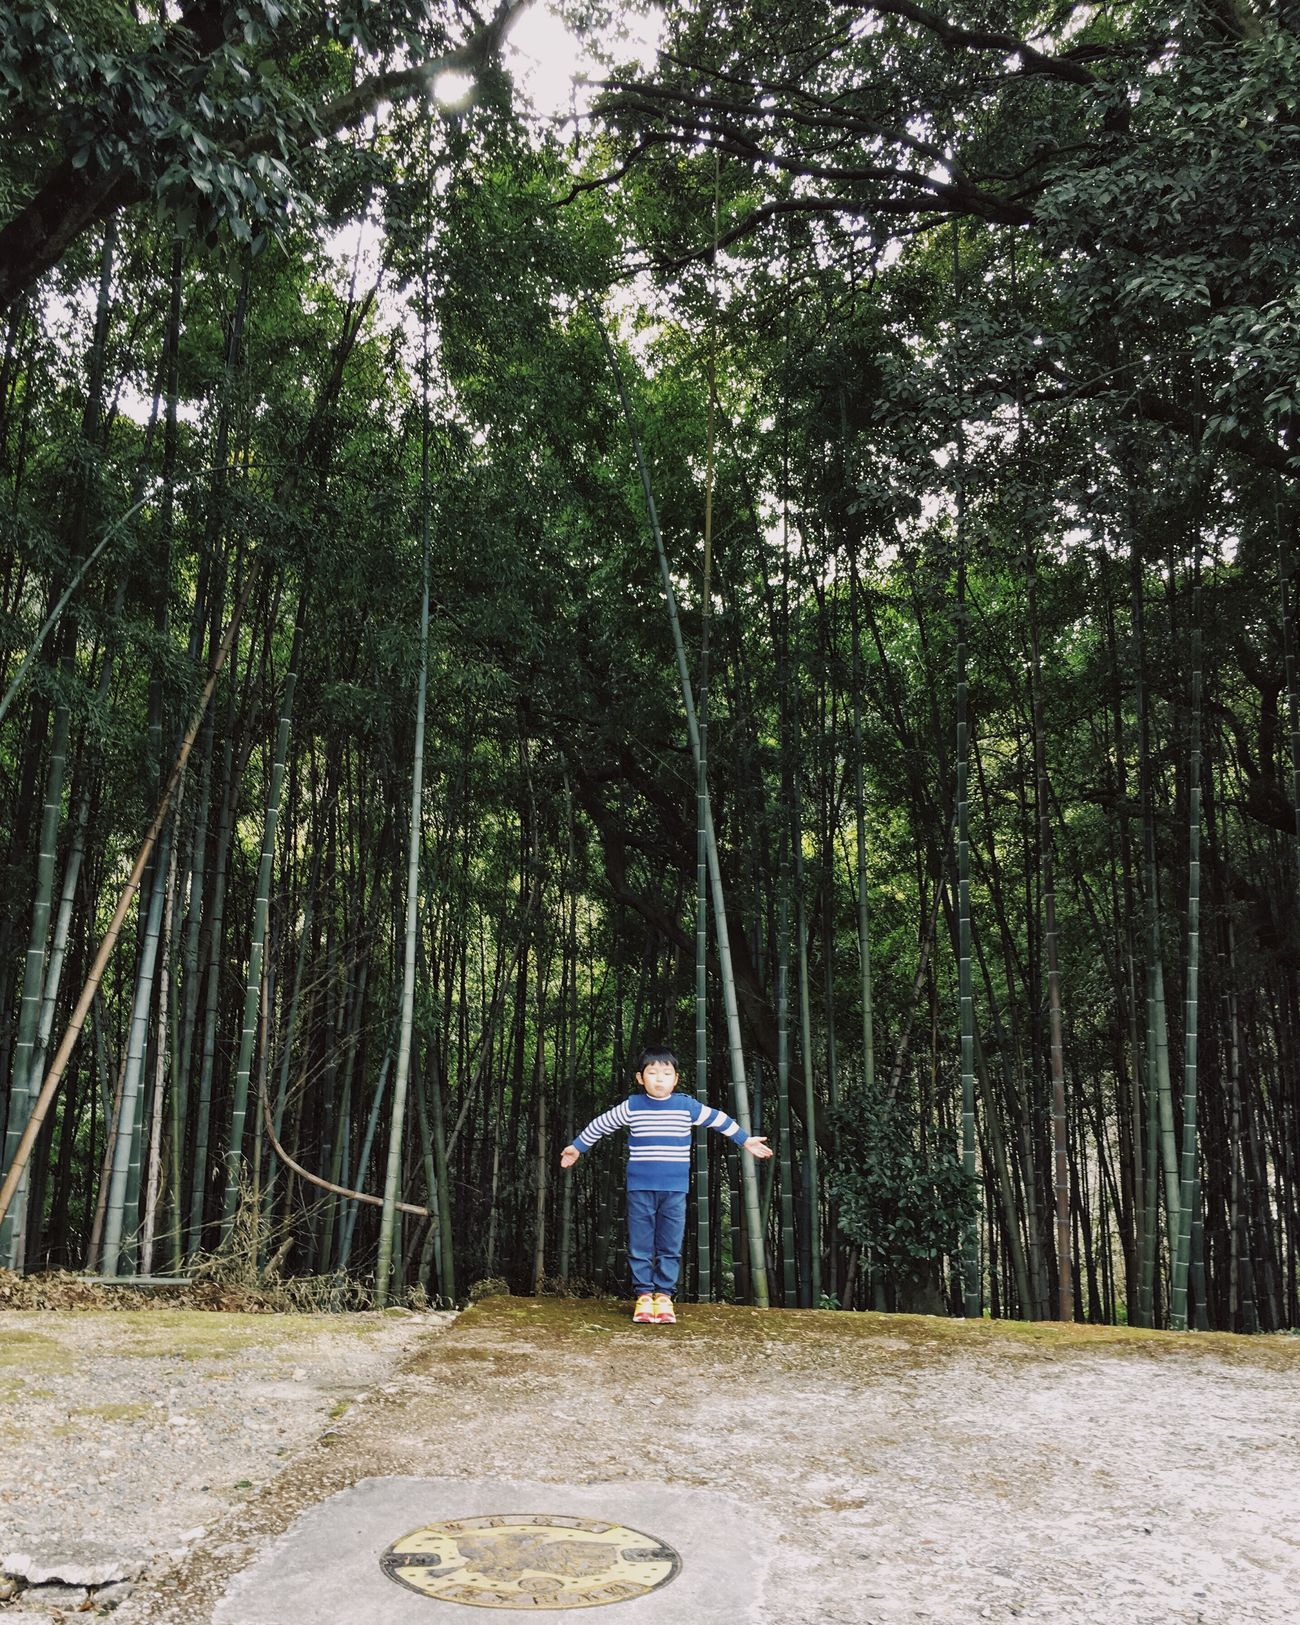 Tree Full Length Forest One Person Rear View Nature Outdoors Leisure Activity Standing Real People Tree Trunk Lifestyles Day Growth Beauty In Nature People Bamboo Grove Holiday Family Child Childhood Long Goodbye The Secret Spaces Art Is Everywhere The Great Outdoors - 2017 EyeEm Awards